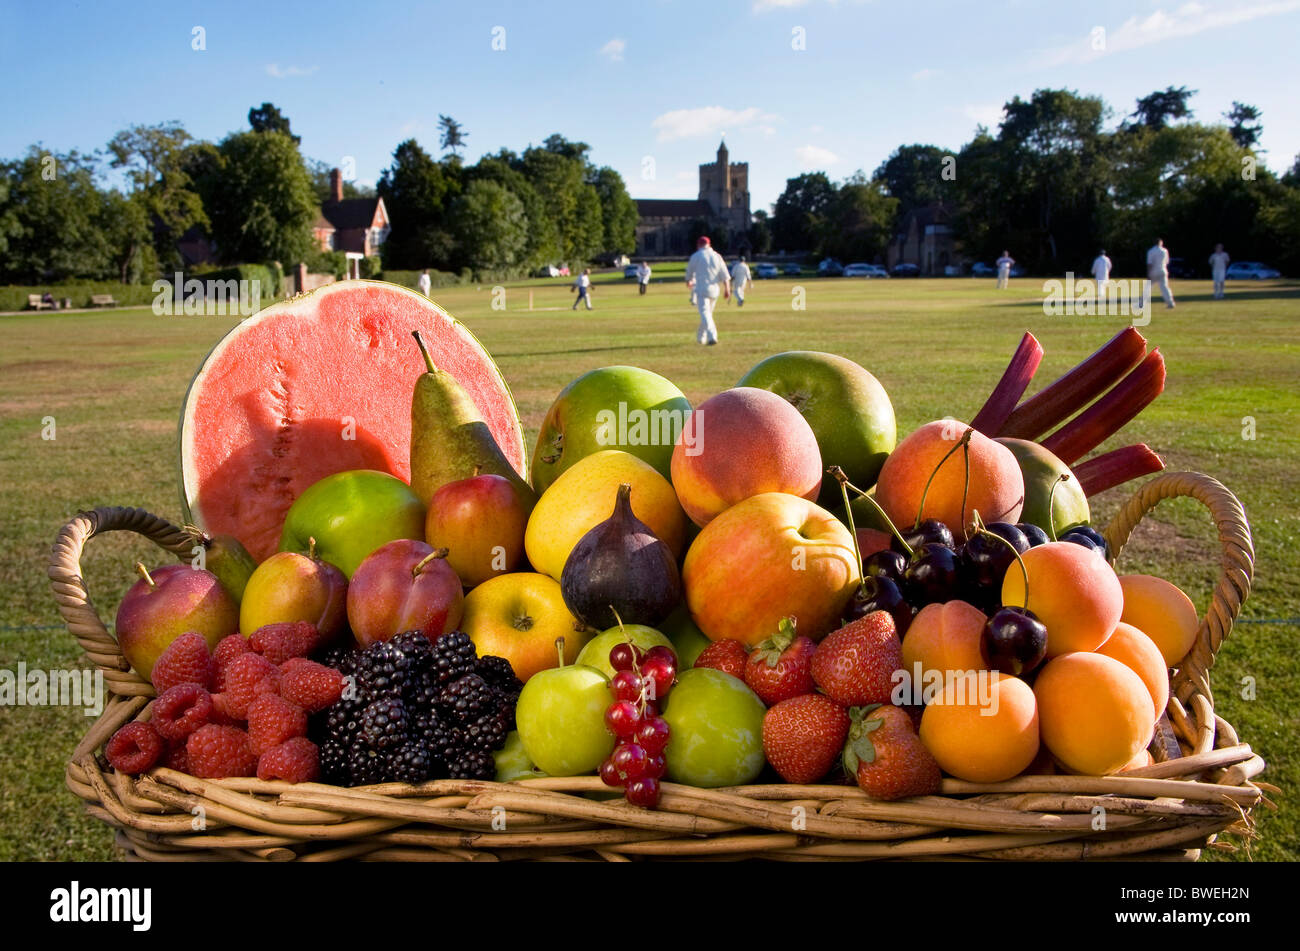 Basket of delicious locally grown fresh healthy summer fruits beside Benenden Village Green with cricket match in Stock Photo